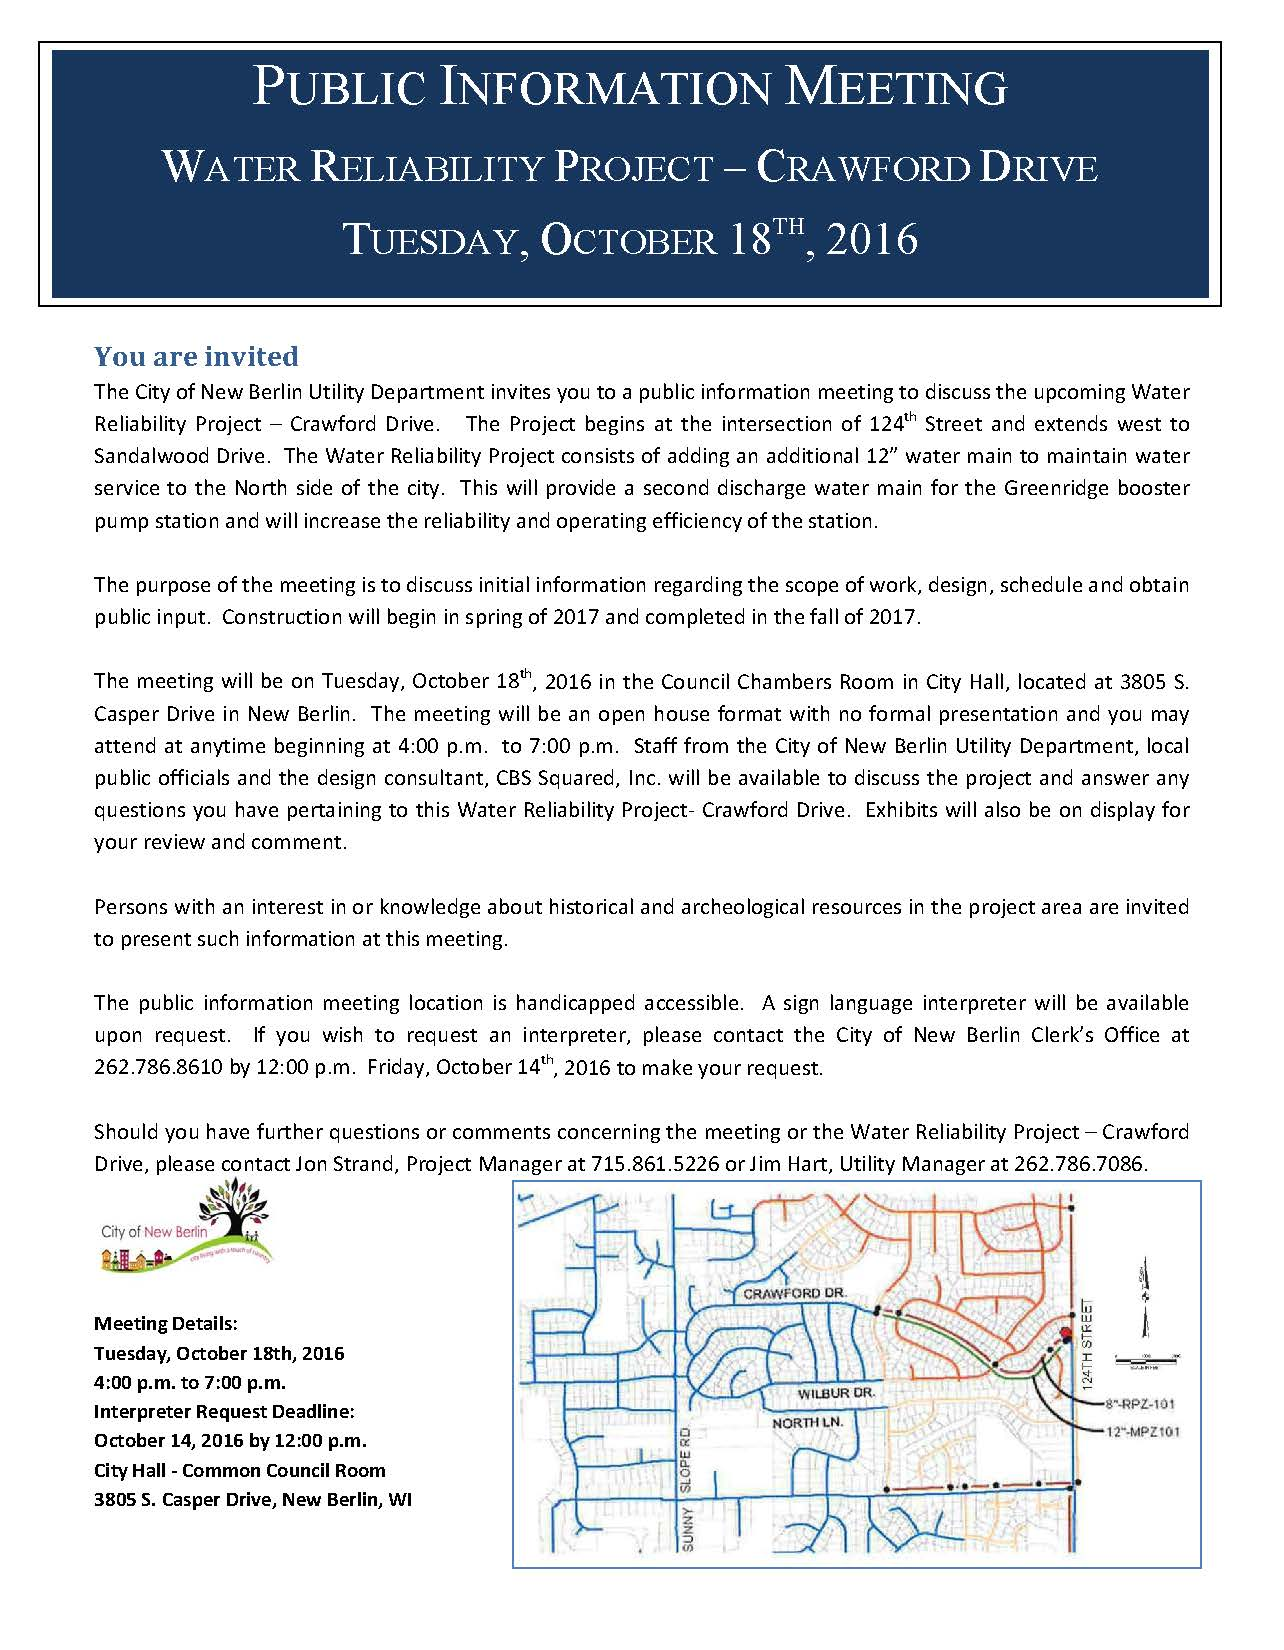 Crawford Drive Water Reliability Informational Meeting Letter 10-18-16.jpg